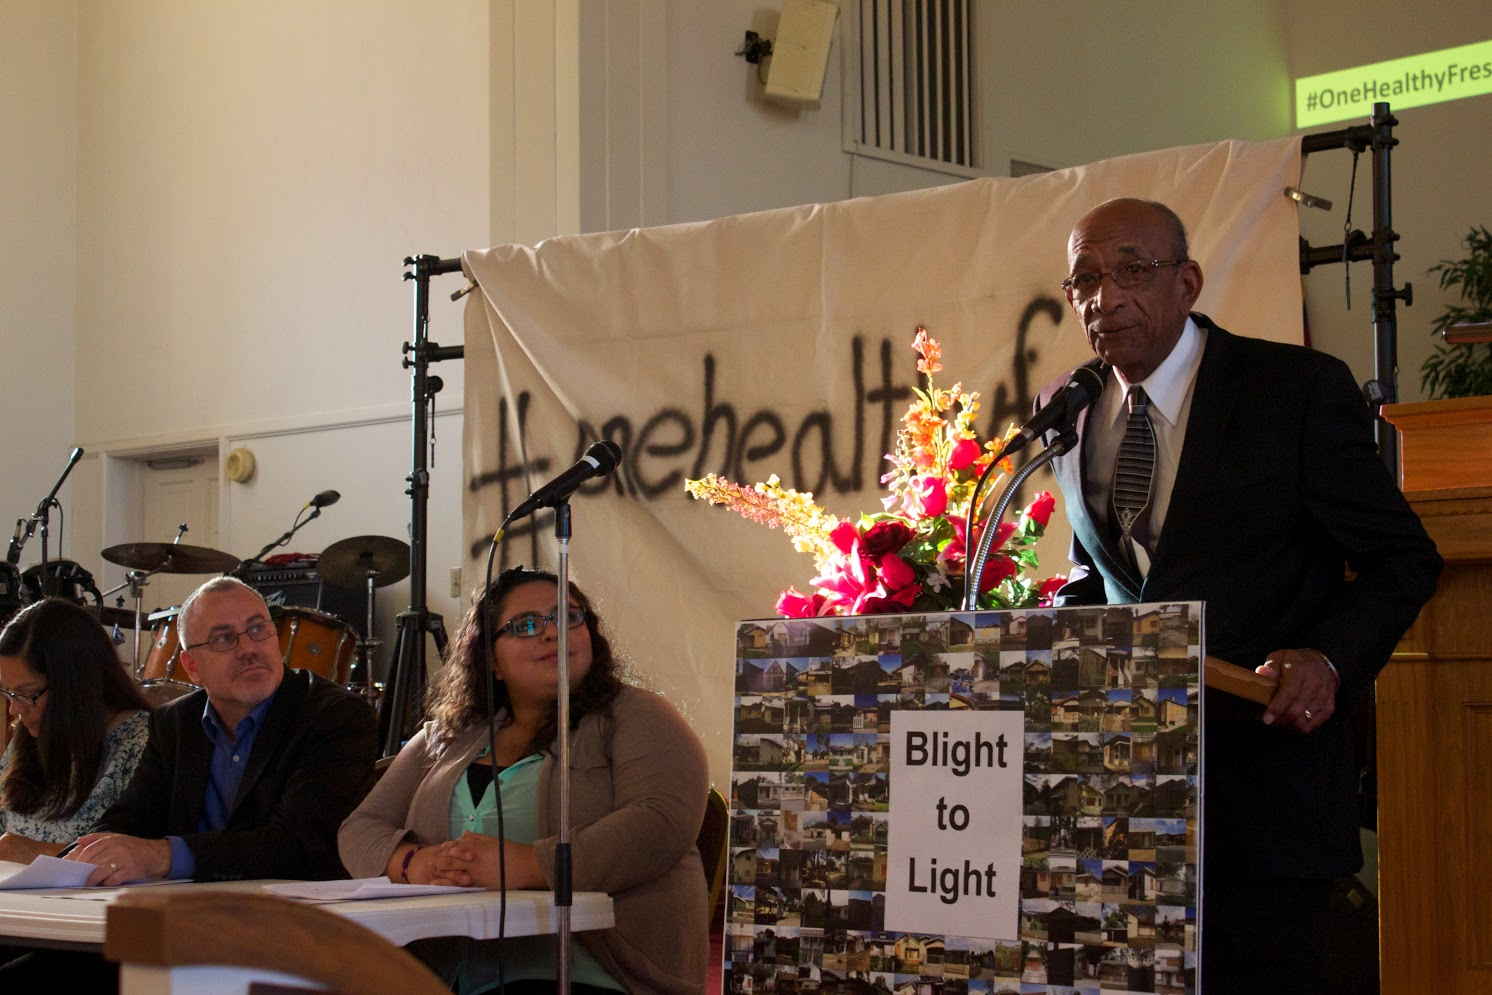 Pastor Richard Daniels addresses the crowd at last night's Blight to Light meeting. All pictures by Colby Tippett